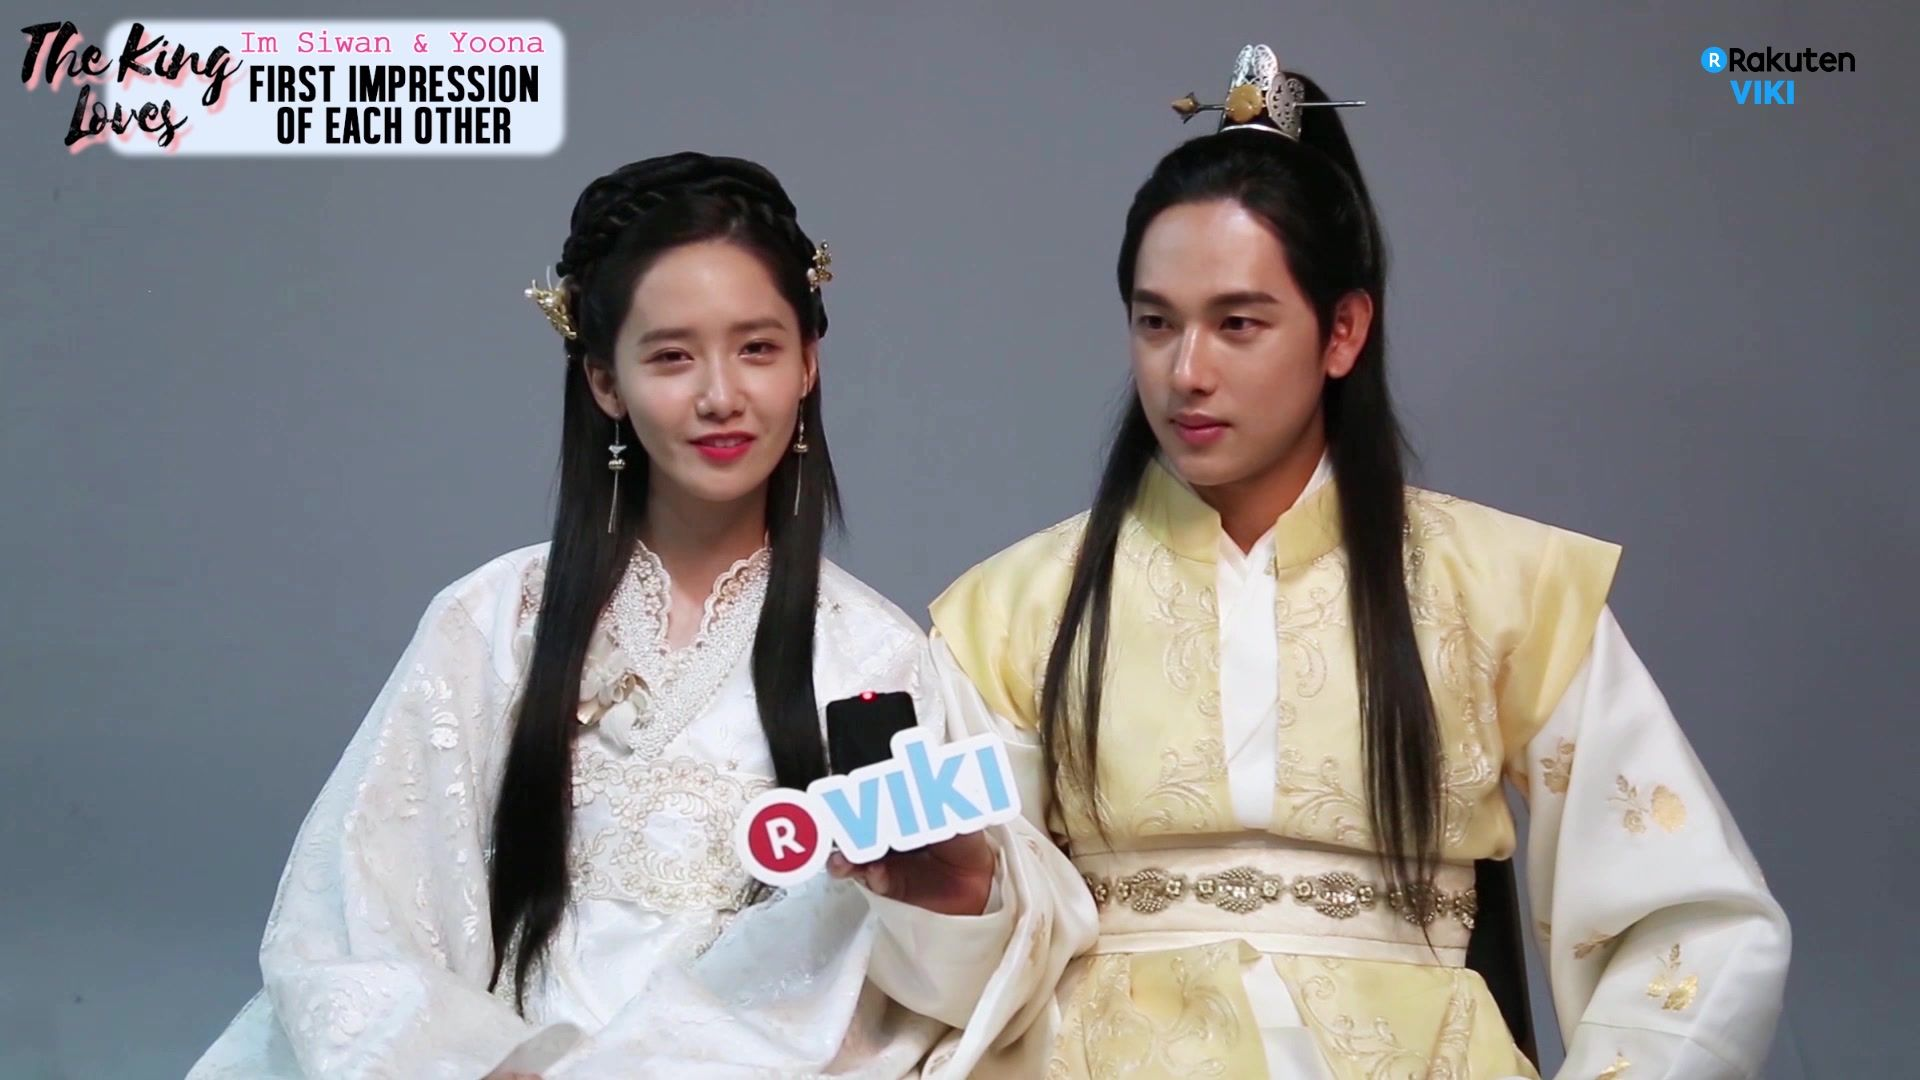 Im Yoona Movie List Minimalist exclusive interview with im siwan and yoona: the king loves - 왕은